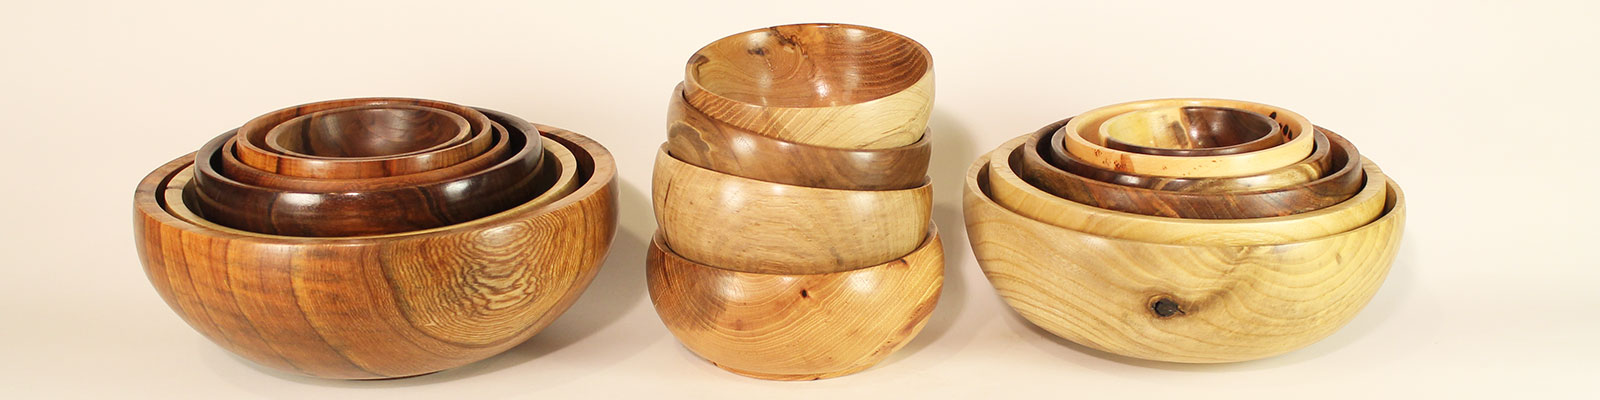 Dr Bill Rosener WoodTurning